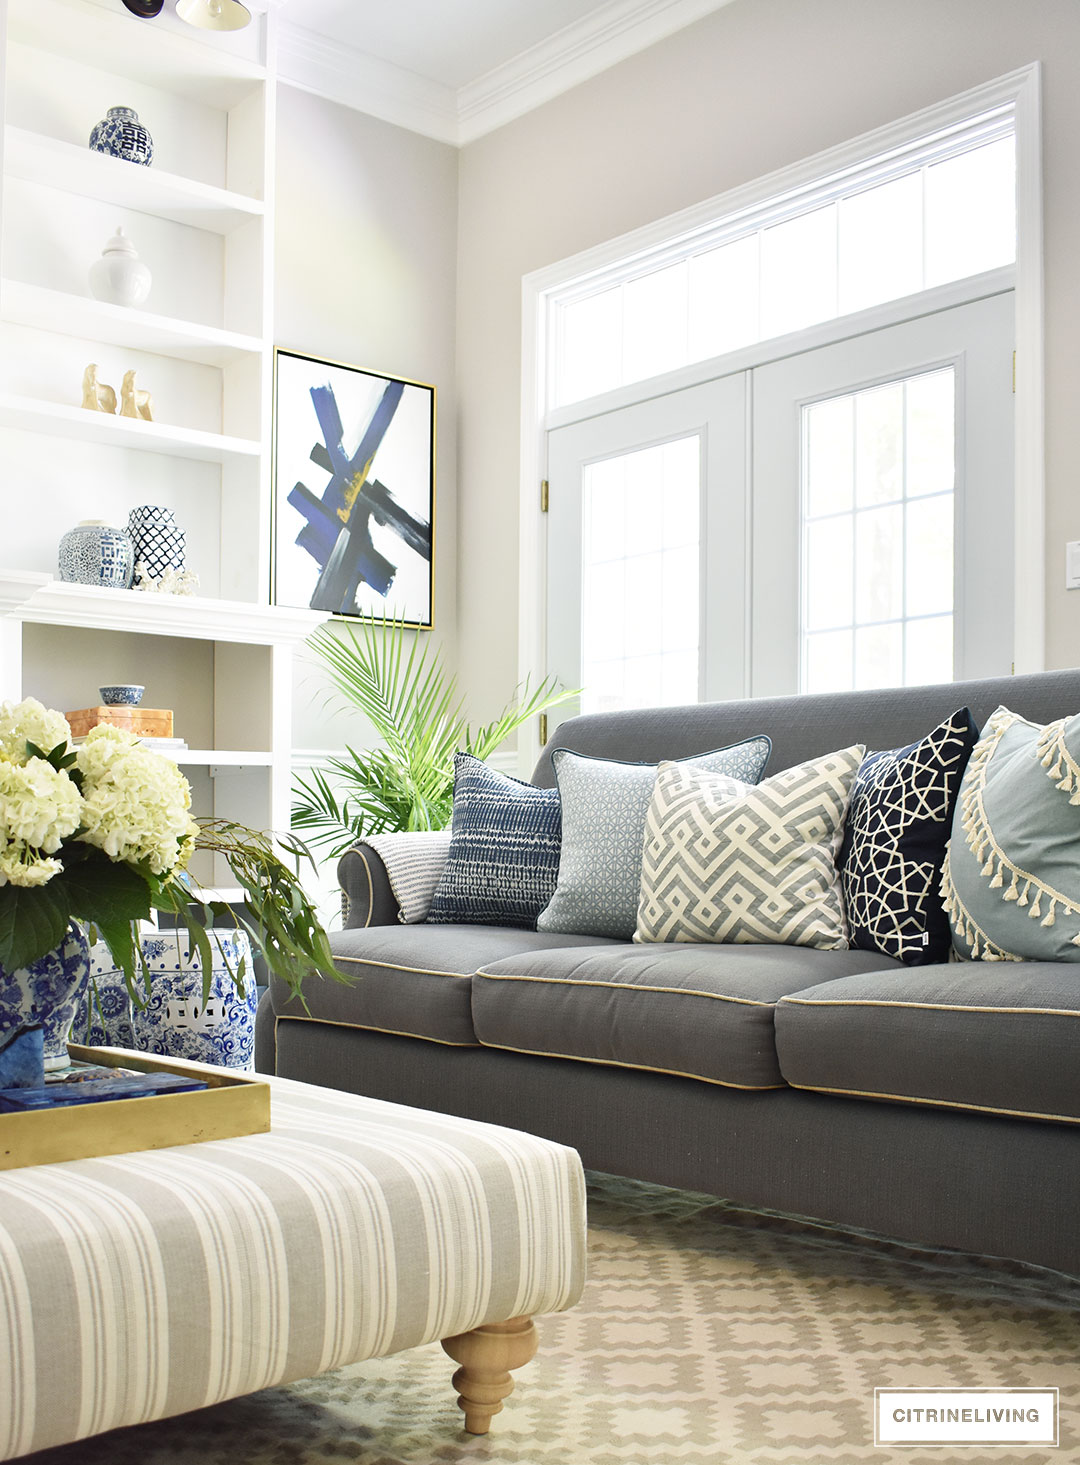 A striped ottoman with turned feet is a classic and elegant addition to this living room. Neutral warm grey and ivory is the perfect compliment to many layers of blue pattern of the pillows and accessories.